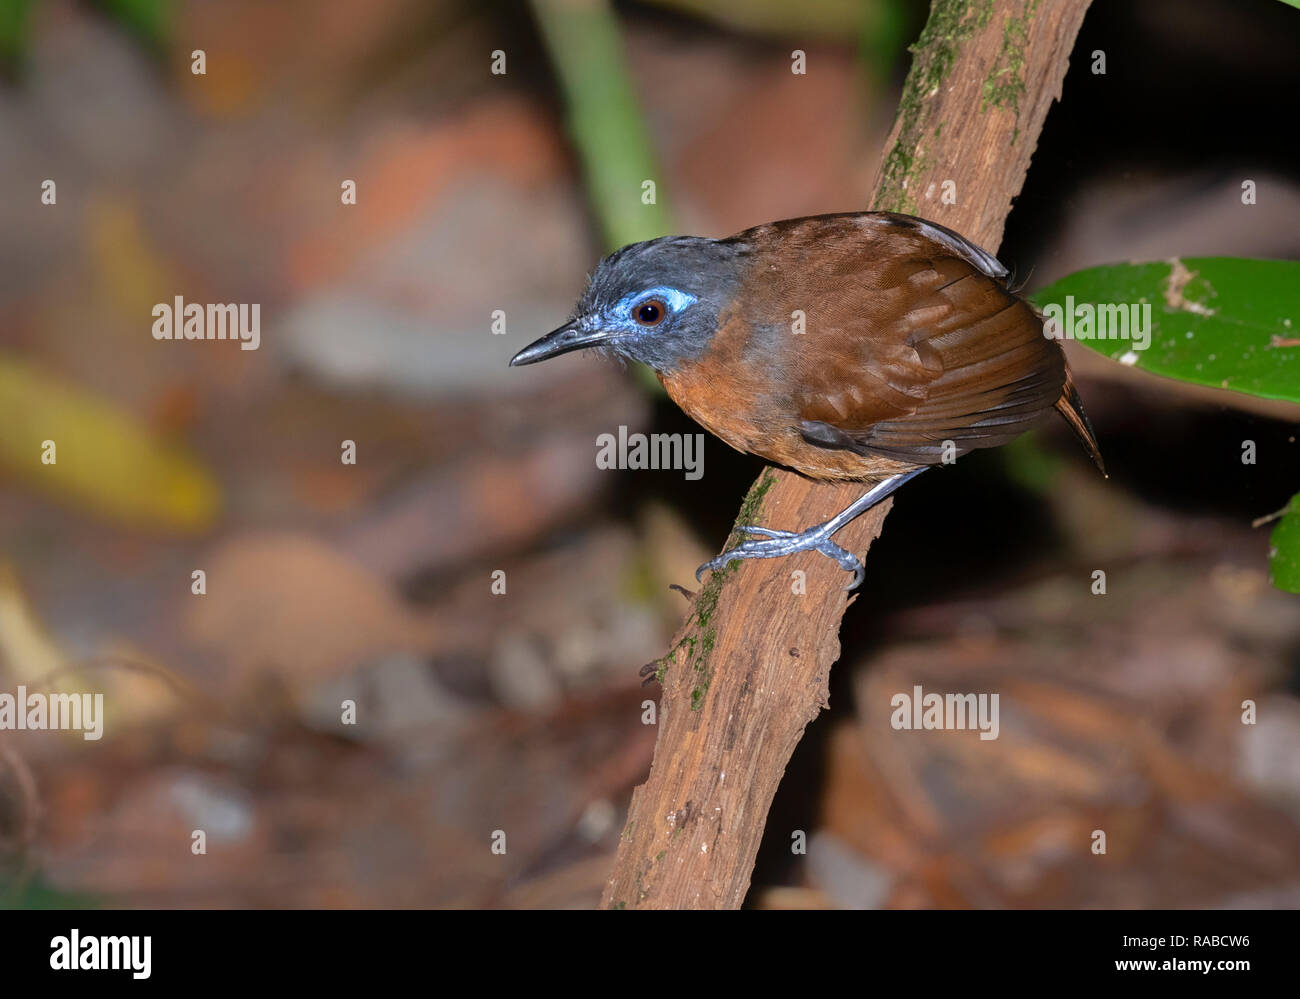 Chestnut backed antbird (Poliocrania exsul) looking for insects on the ground of rain forest, Manuel Antonio National Park, Puntarenas, Costa Rica - Stock Image